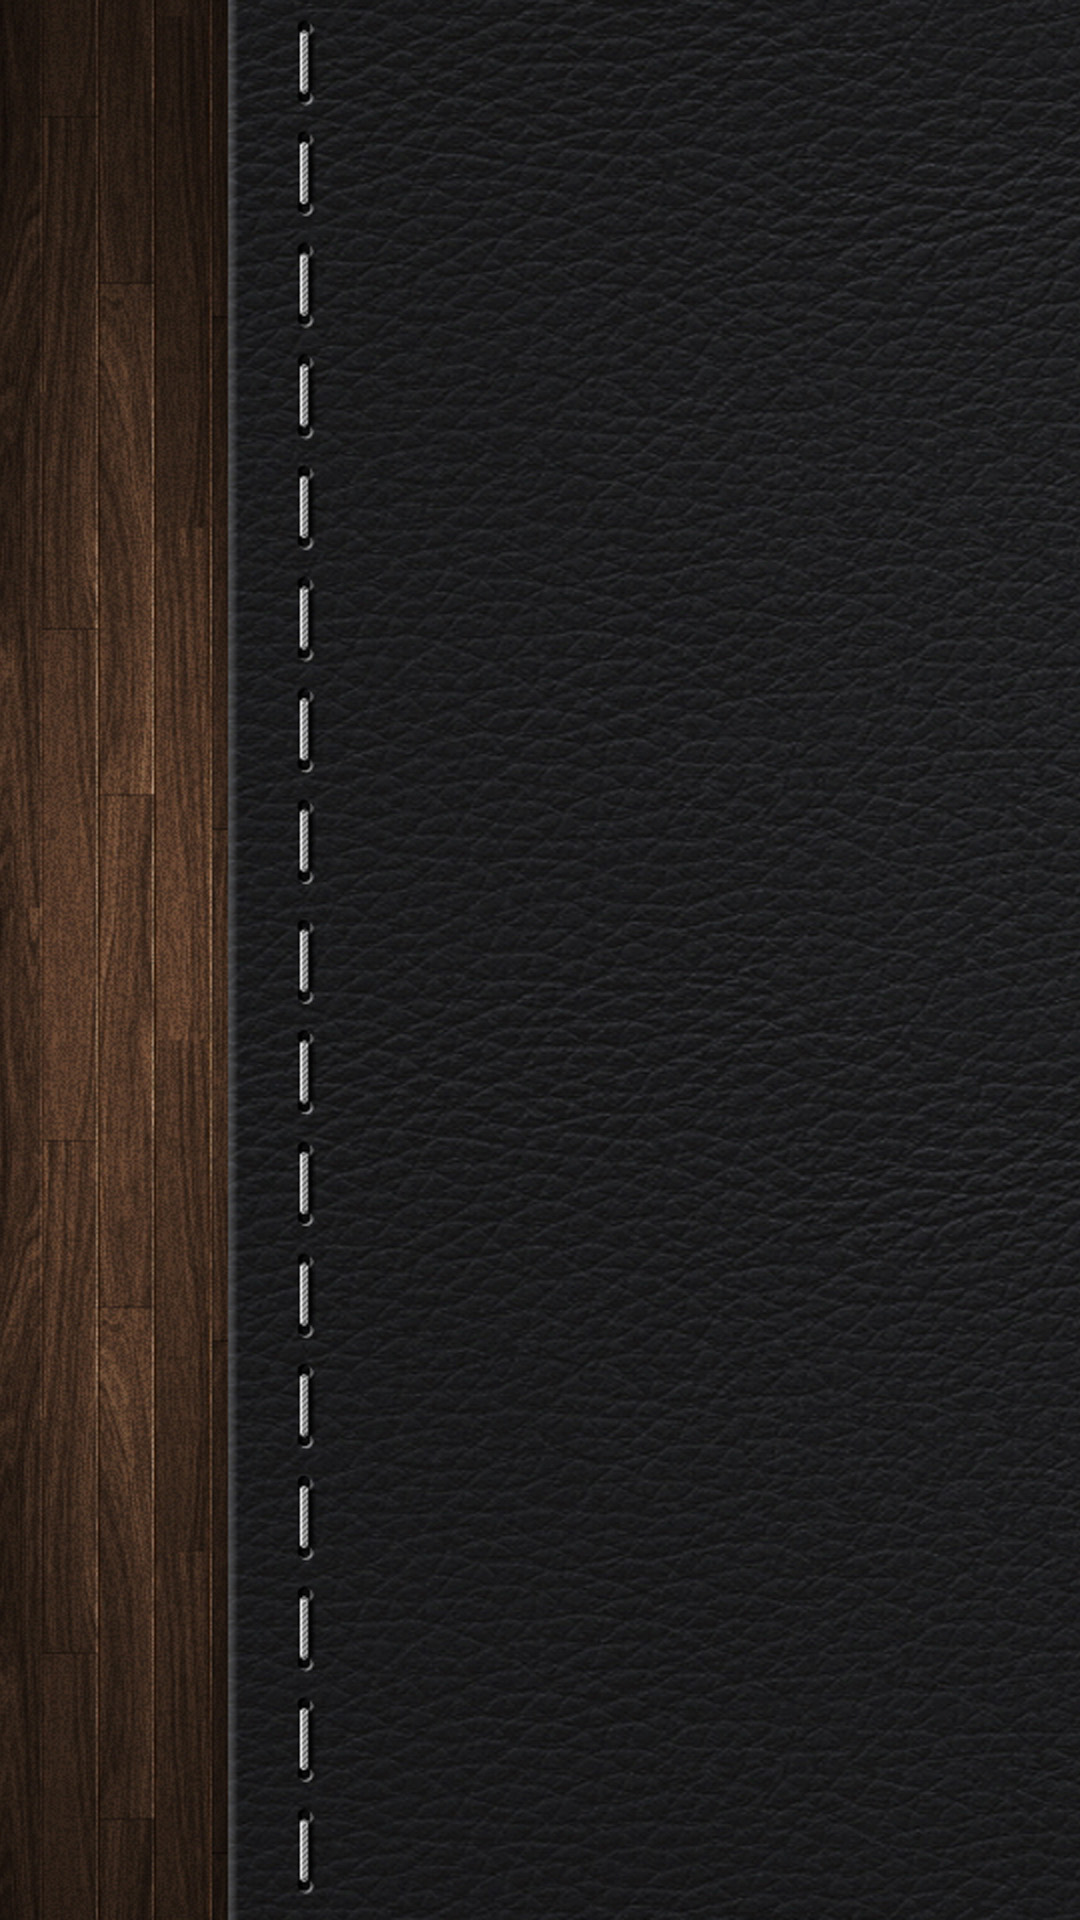 Leather stitching HD Wallpaper iPhone 6 plus   wallpapersmobilenet 1080x1920